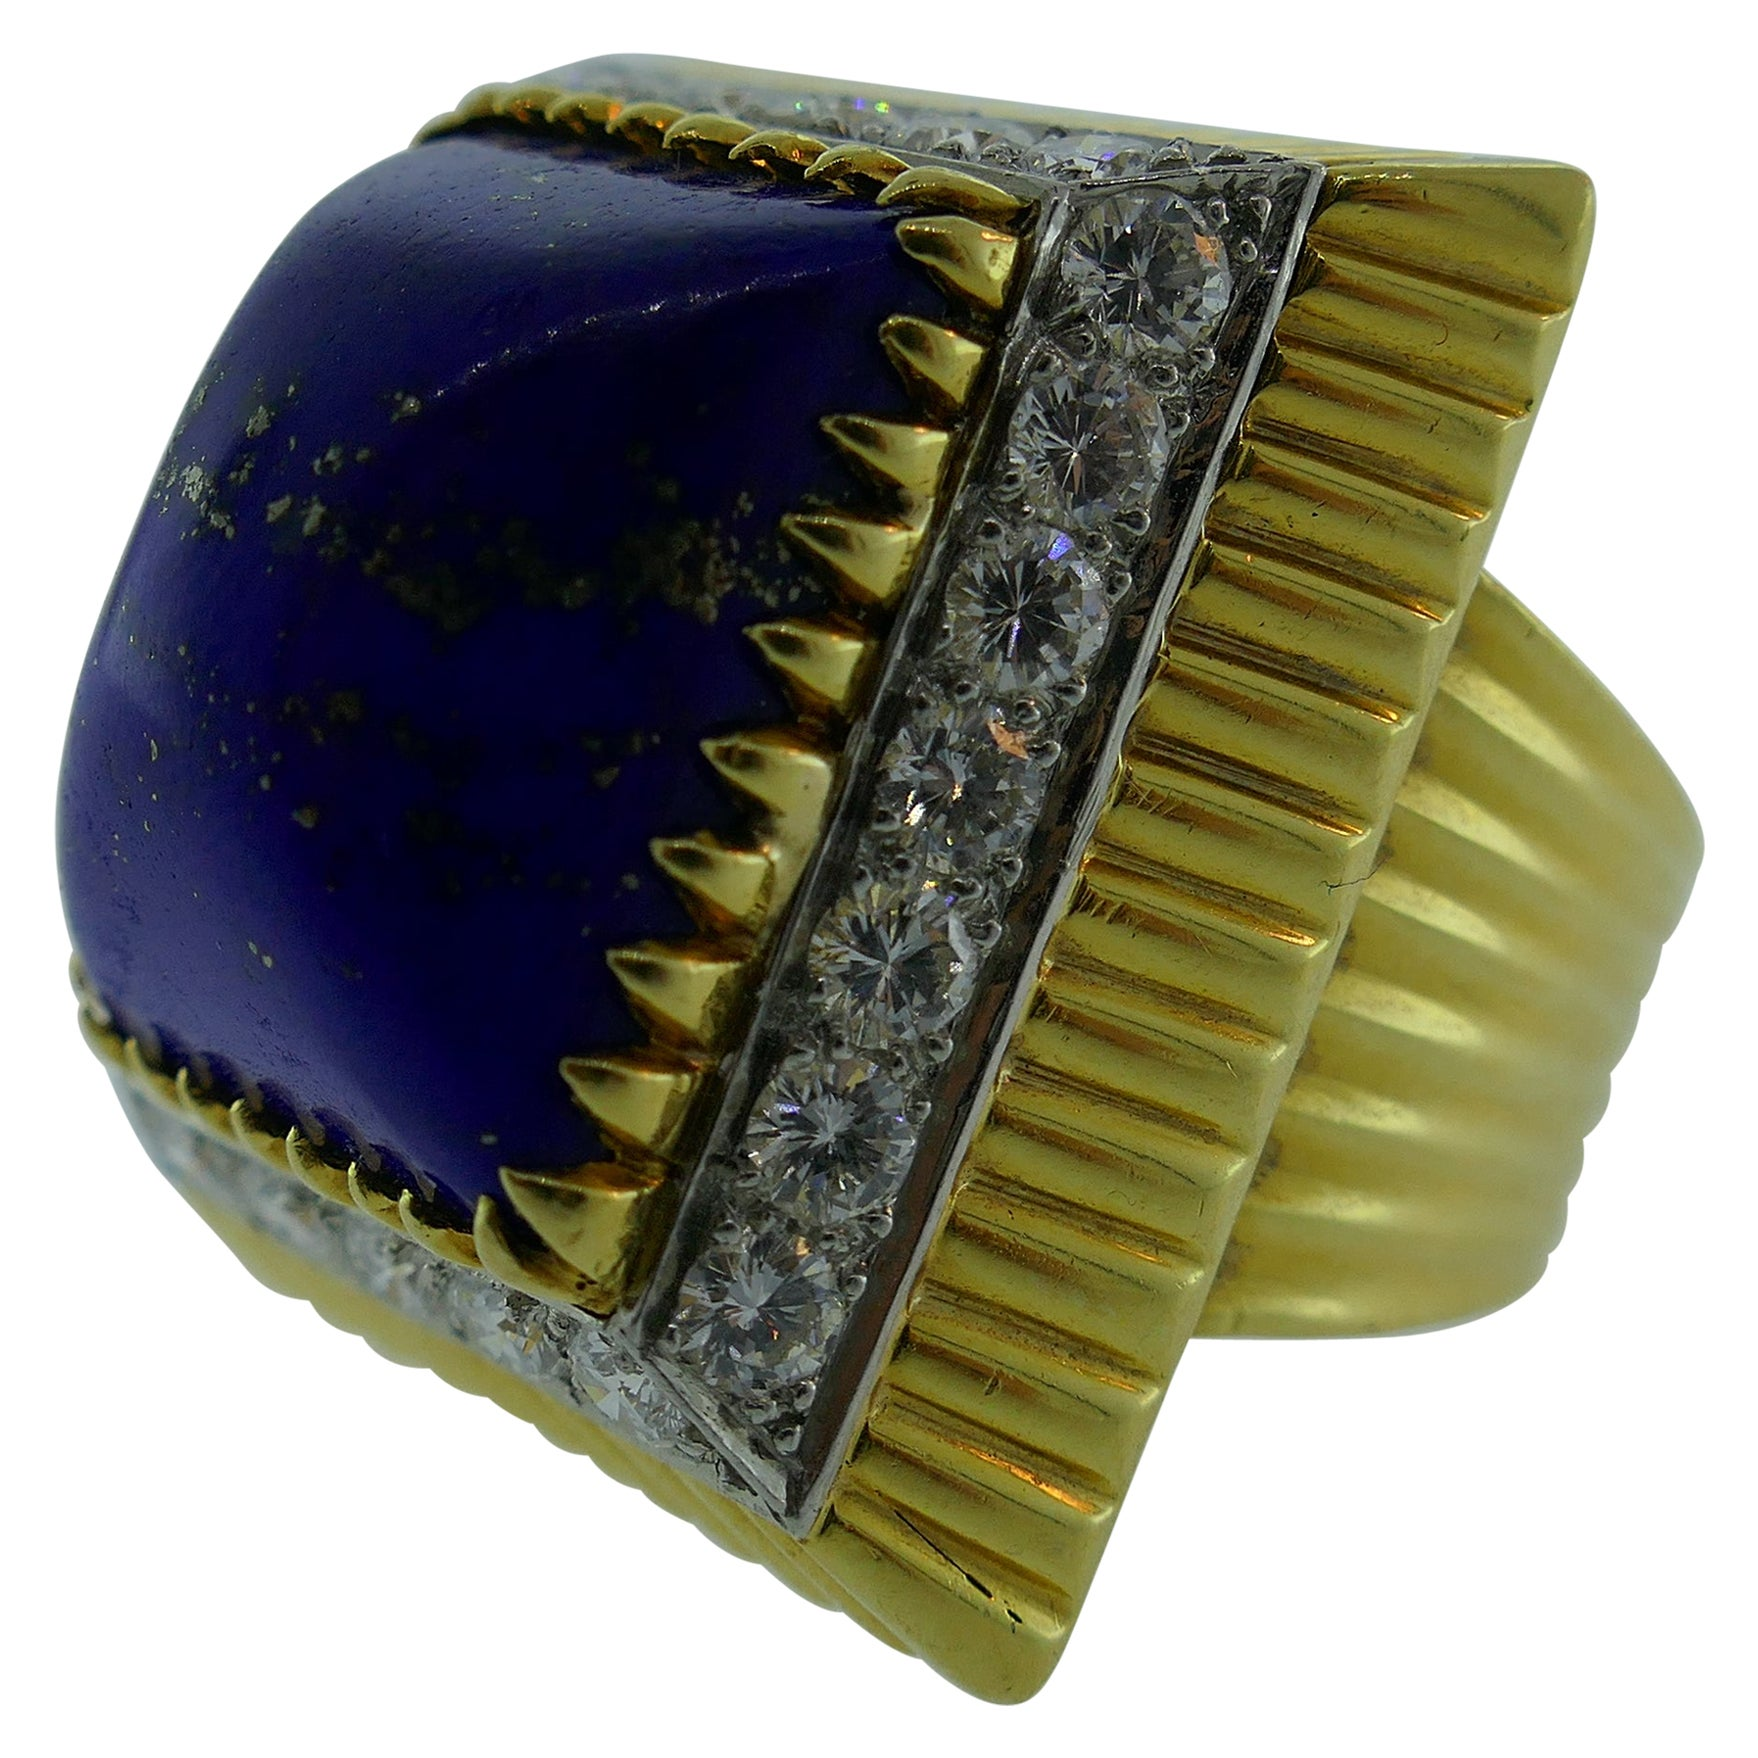 Vintage 18 Karat Yellow Gold, Lapis and Diamond Cocktail Ring, circa 1970s